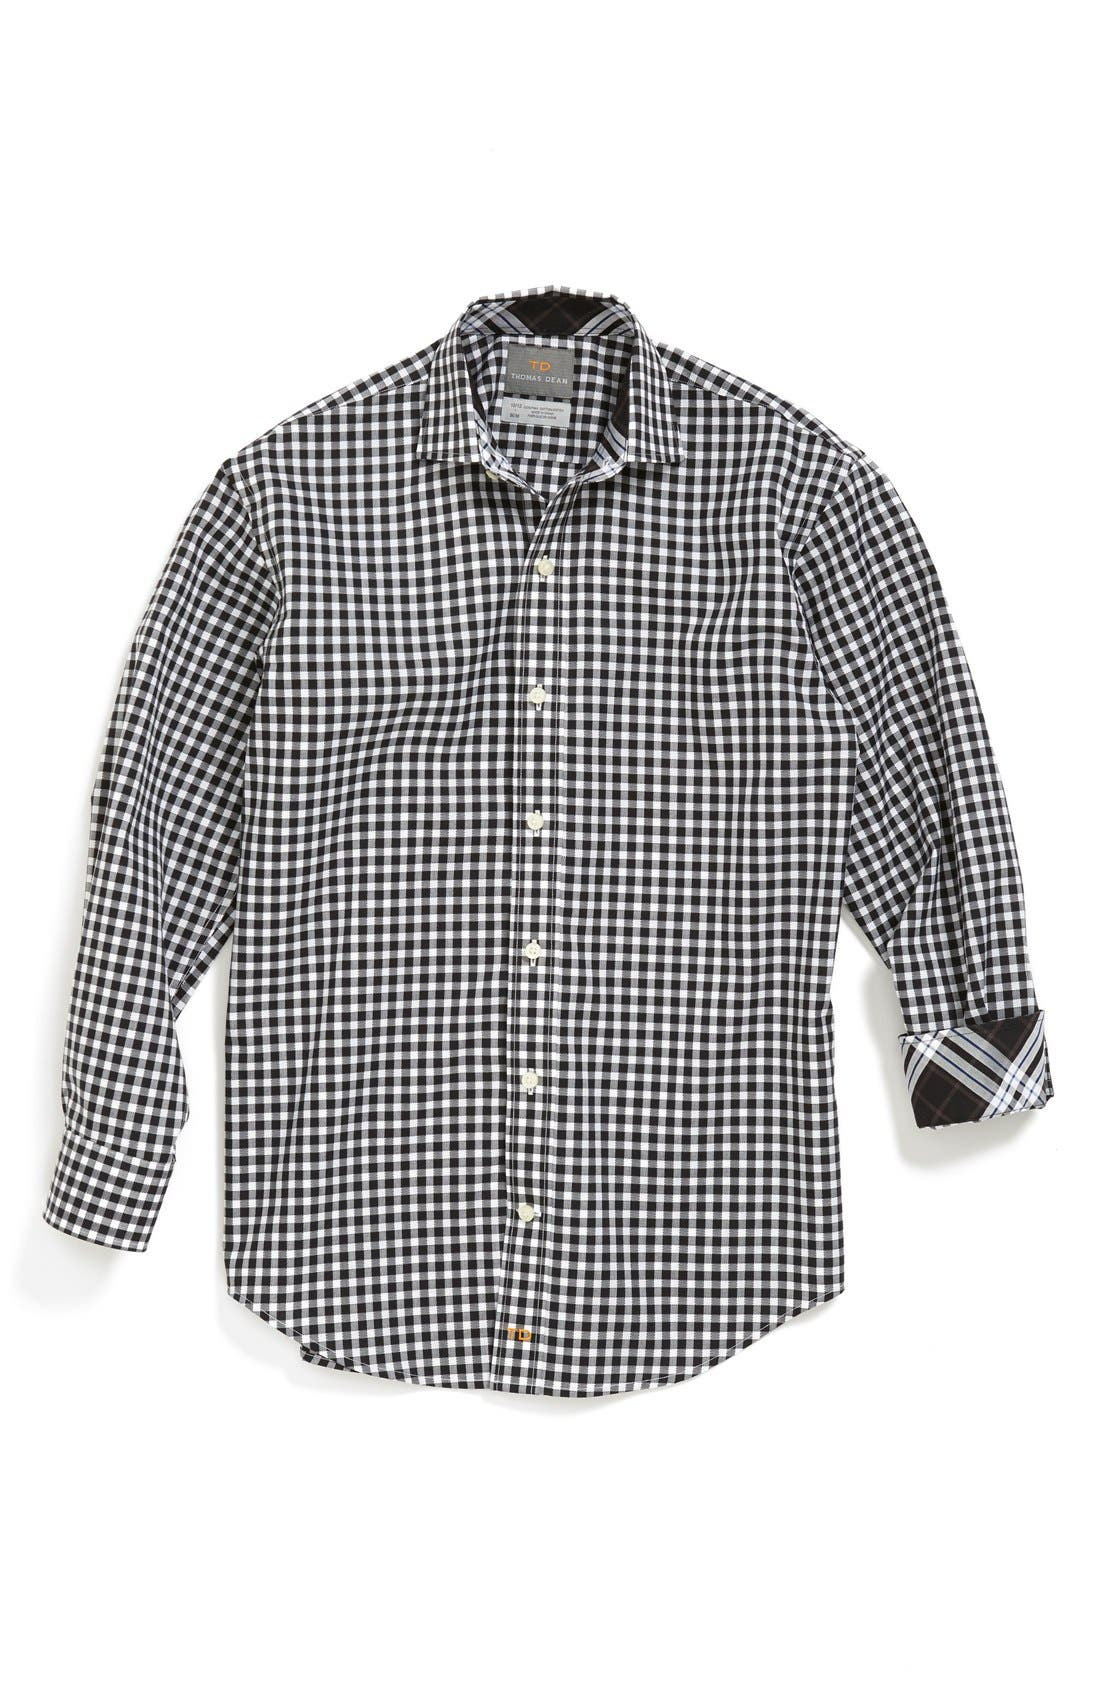 Alternate Image 1 Selected - Thomas Dean Gingham Cotton Poplin Dress Shirt (Big Boys)